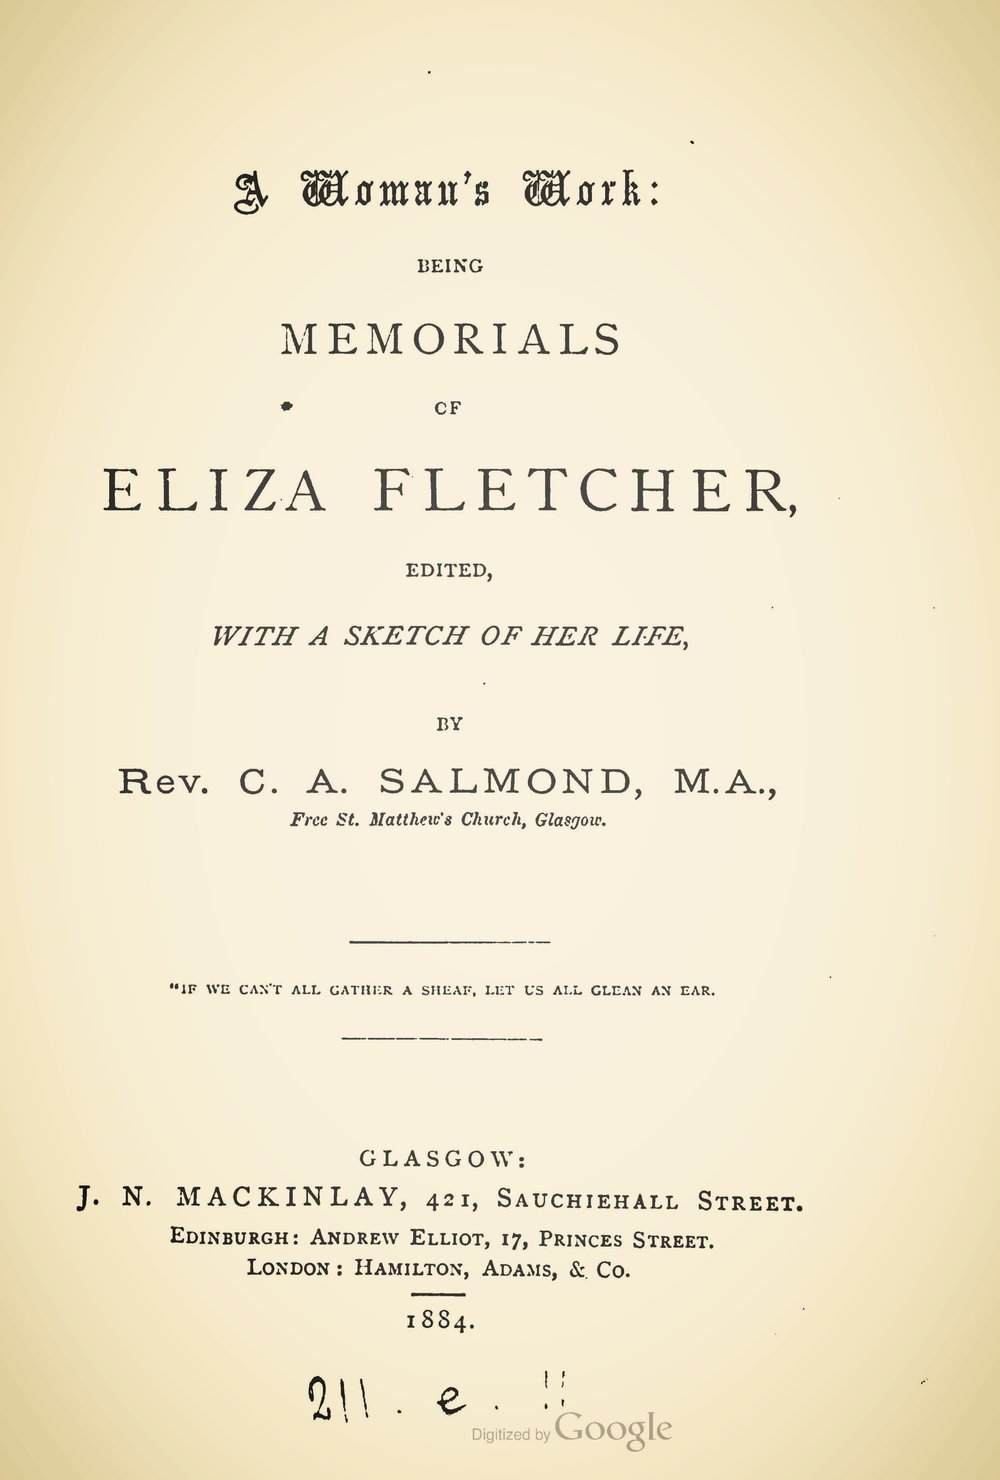 Salmond, Charles Adamson, A Womans Work Memorials of Eliza Fletcher Title Page.jpg